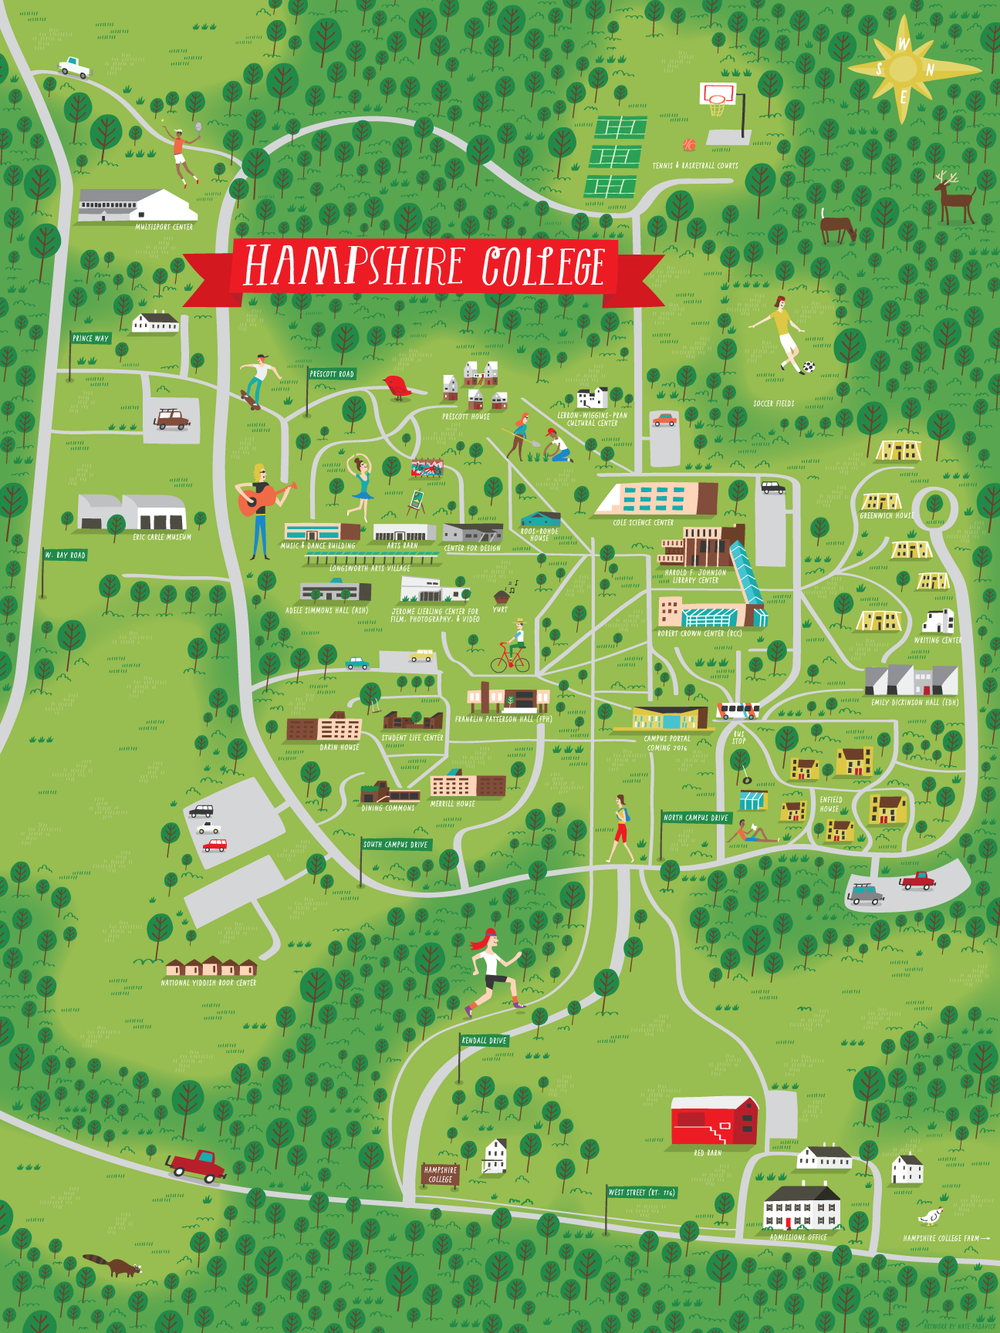 Hampshire College - Map location: Amherst, MA